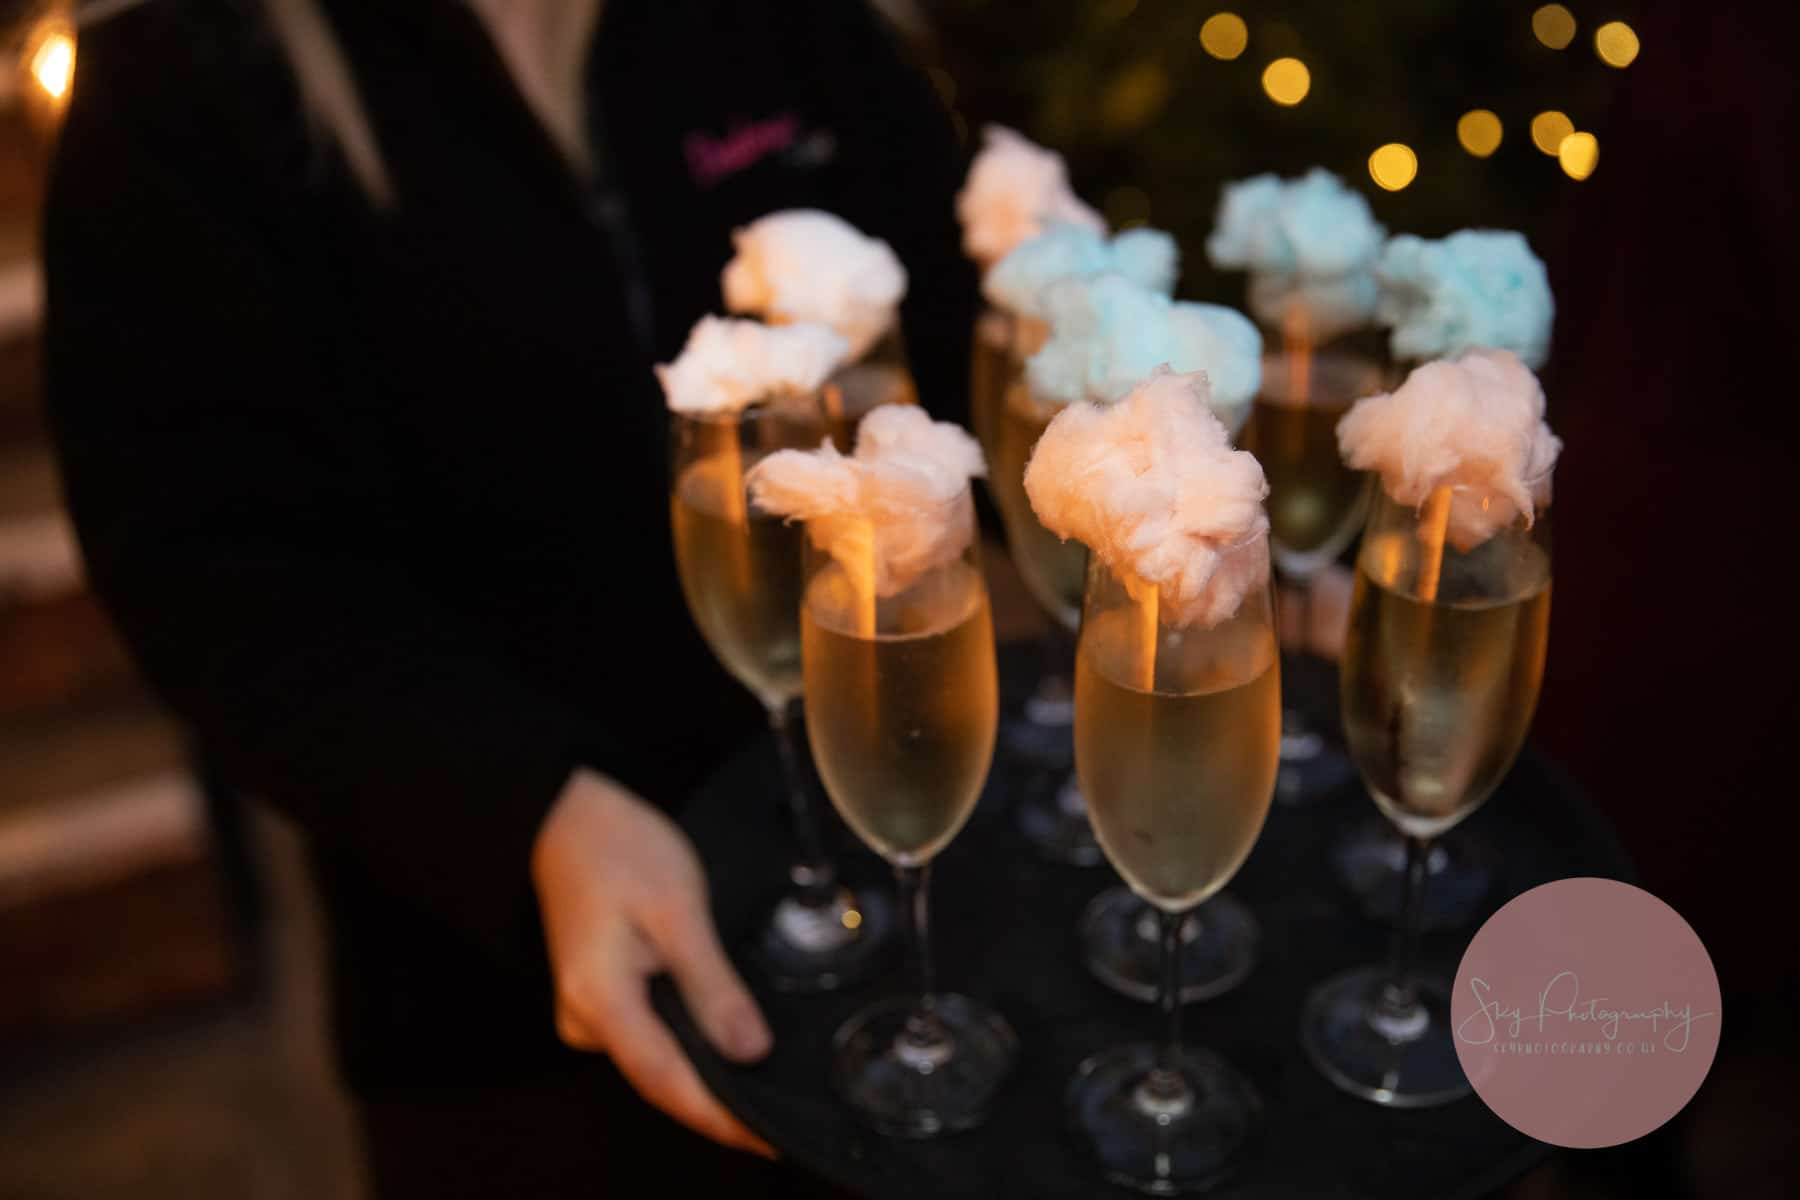 Prosecco being served with candy floss pom poms on top at Dodmoor house